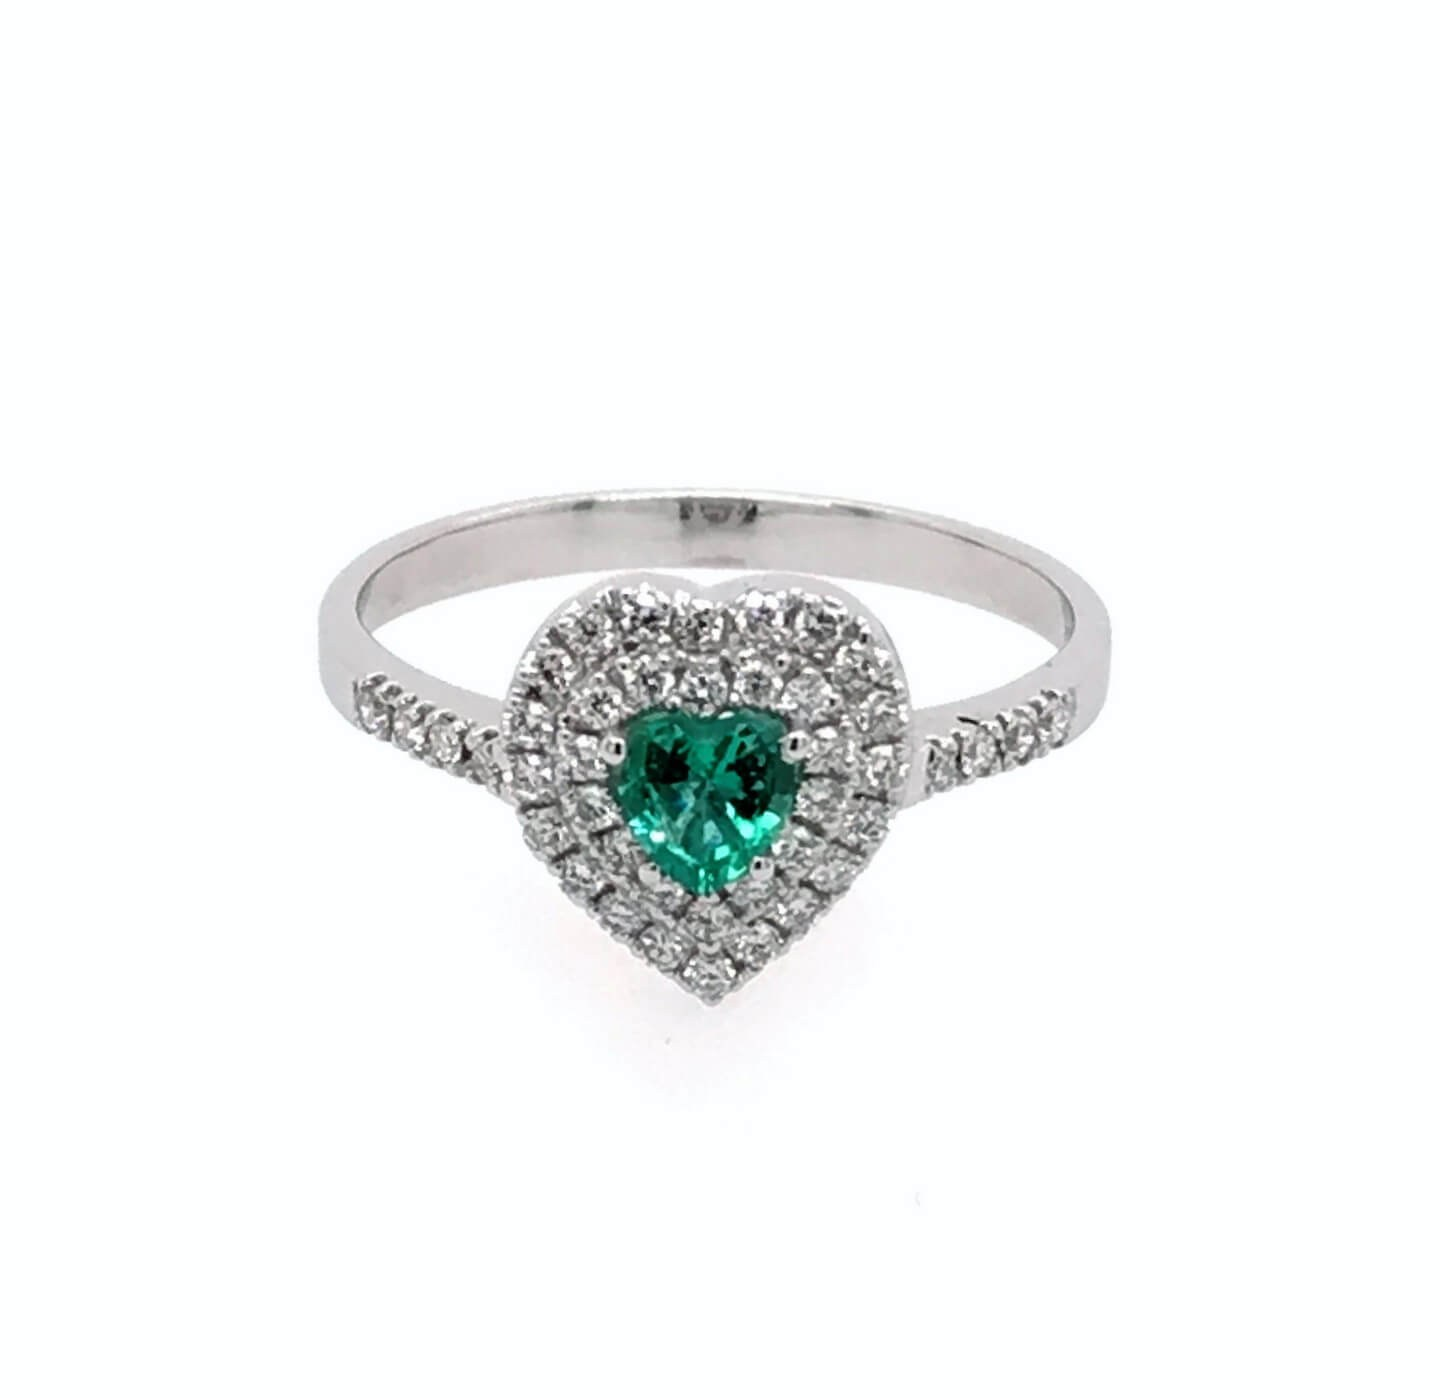 White gold K18 ring with heart shaped emerald 0.21ct and diamonds 0.29ct.